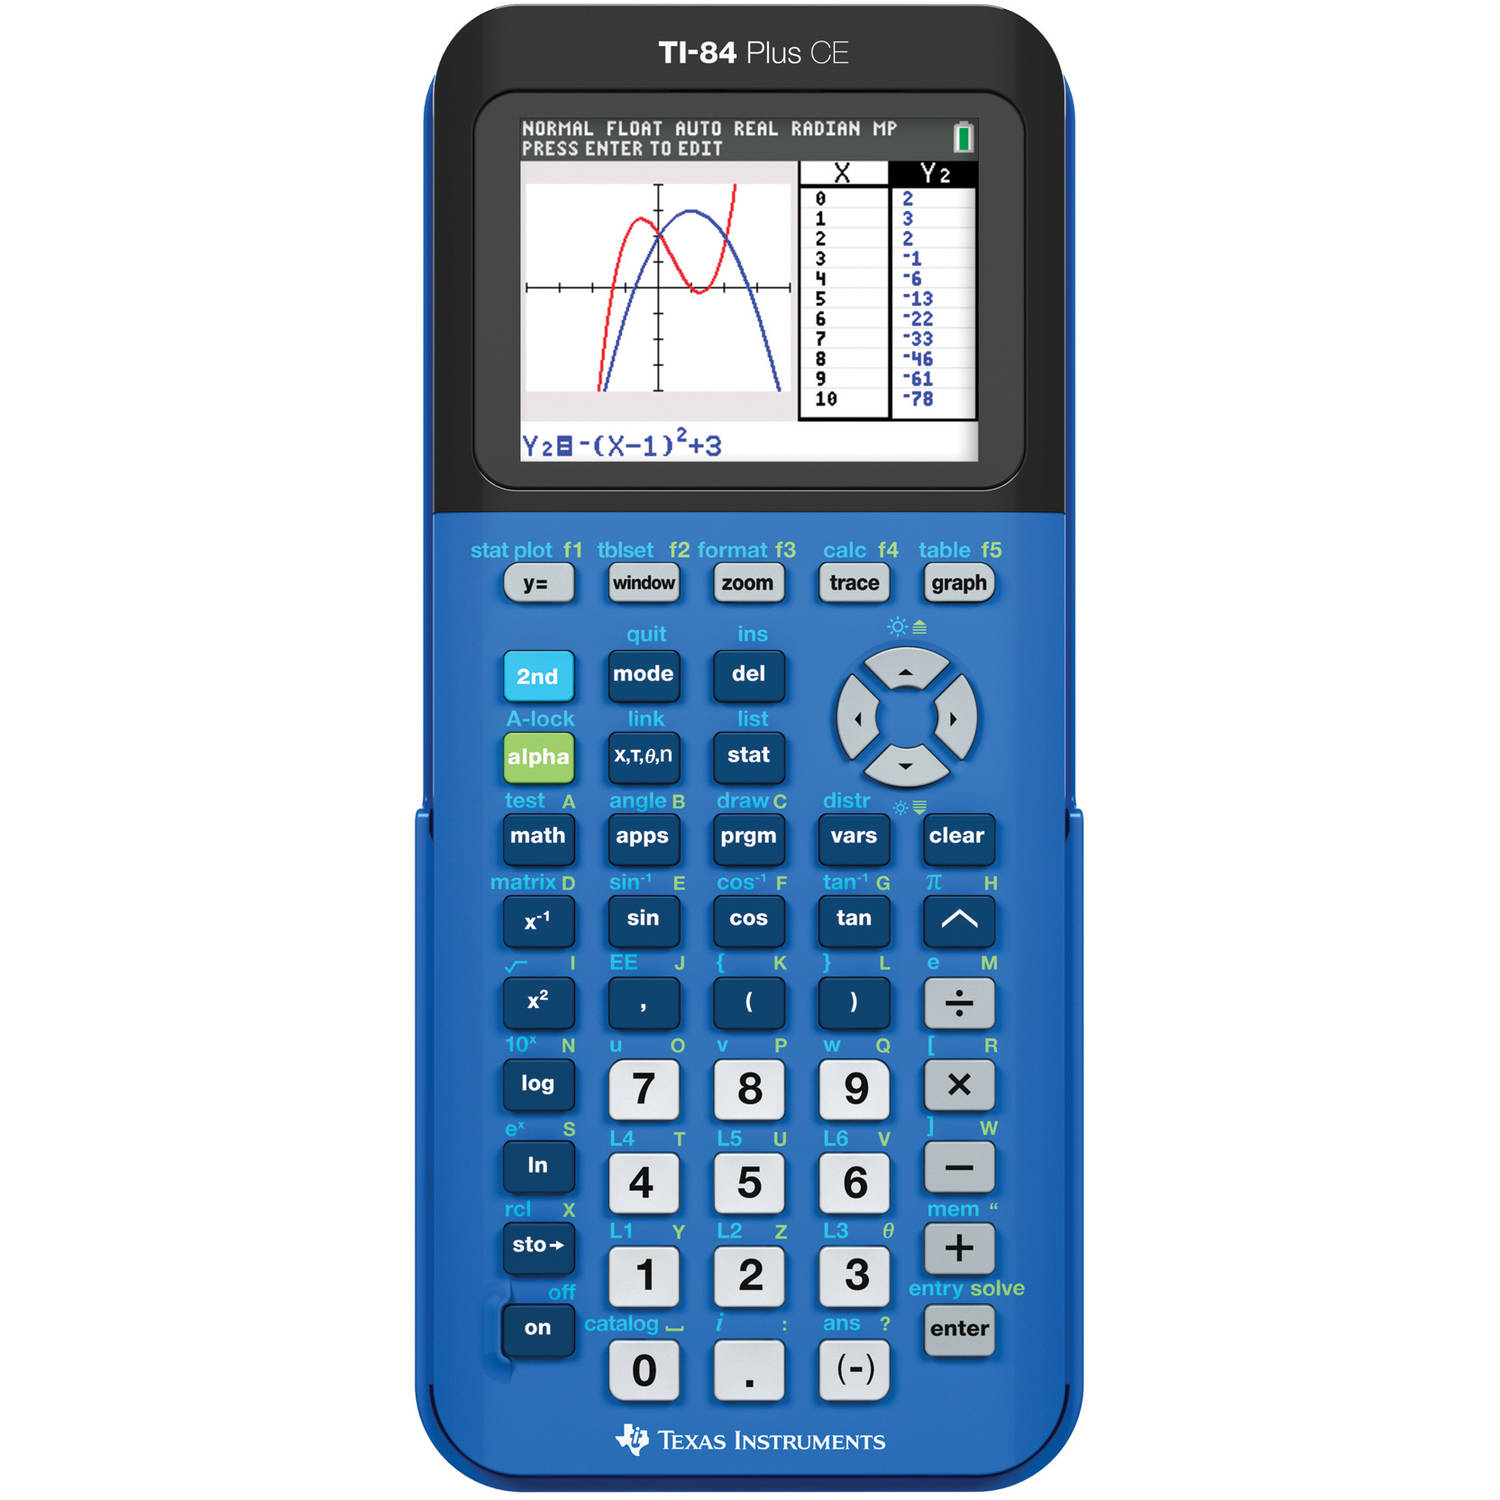 Texas Instruments TI-84 Plus CE Graphing Calculator, Blue by Texas Instruments